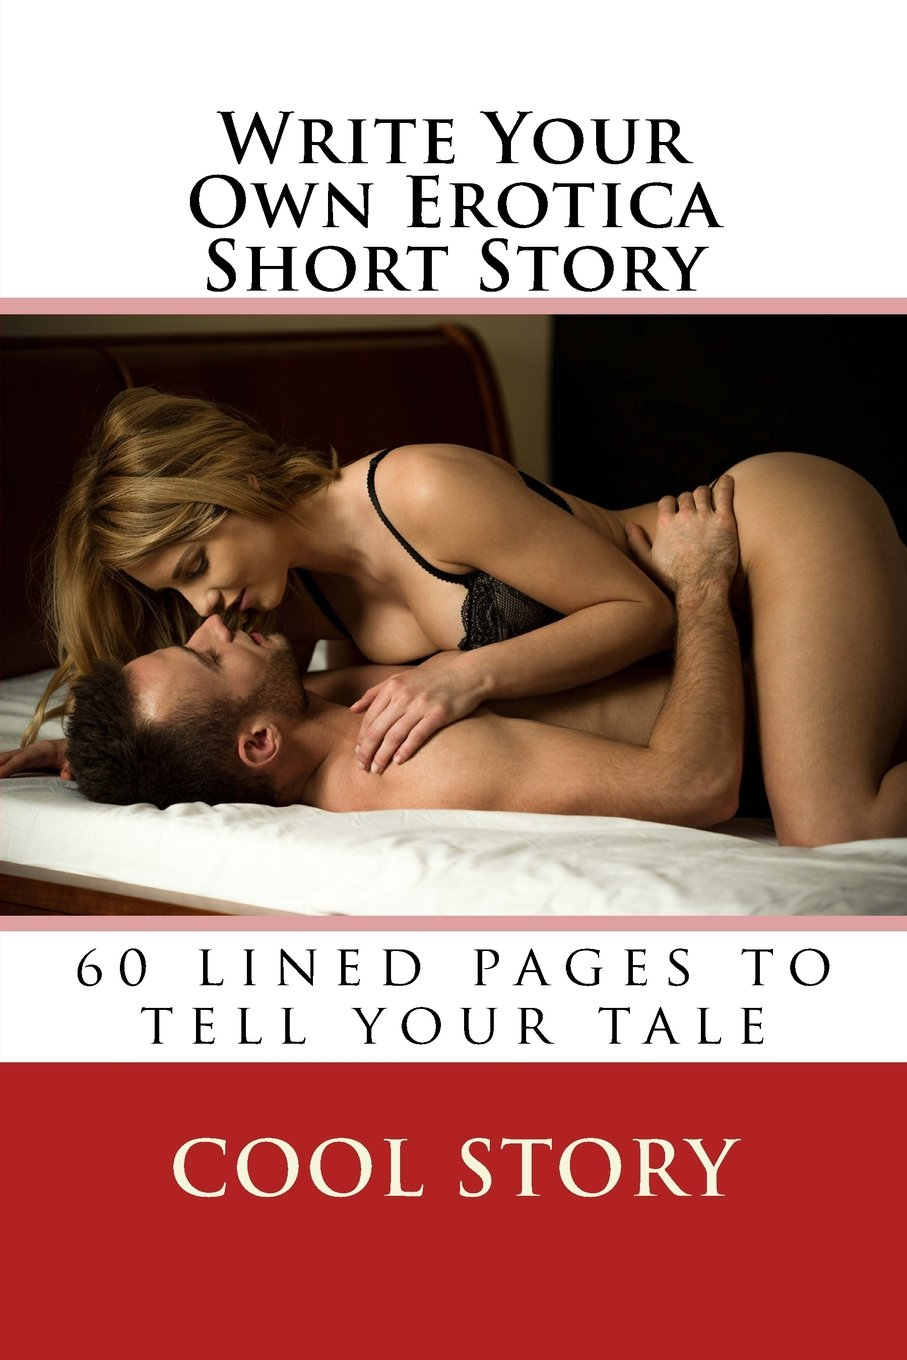 Write Your Own Erotic Story